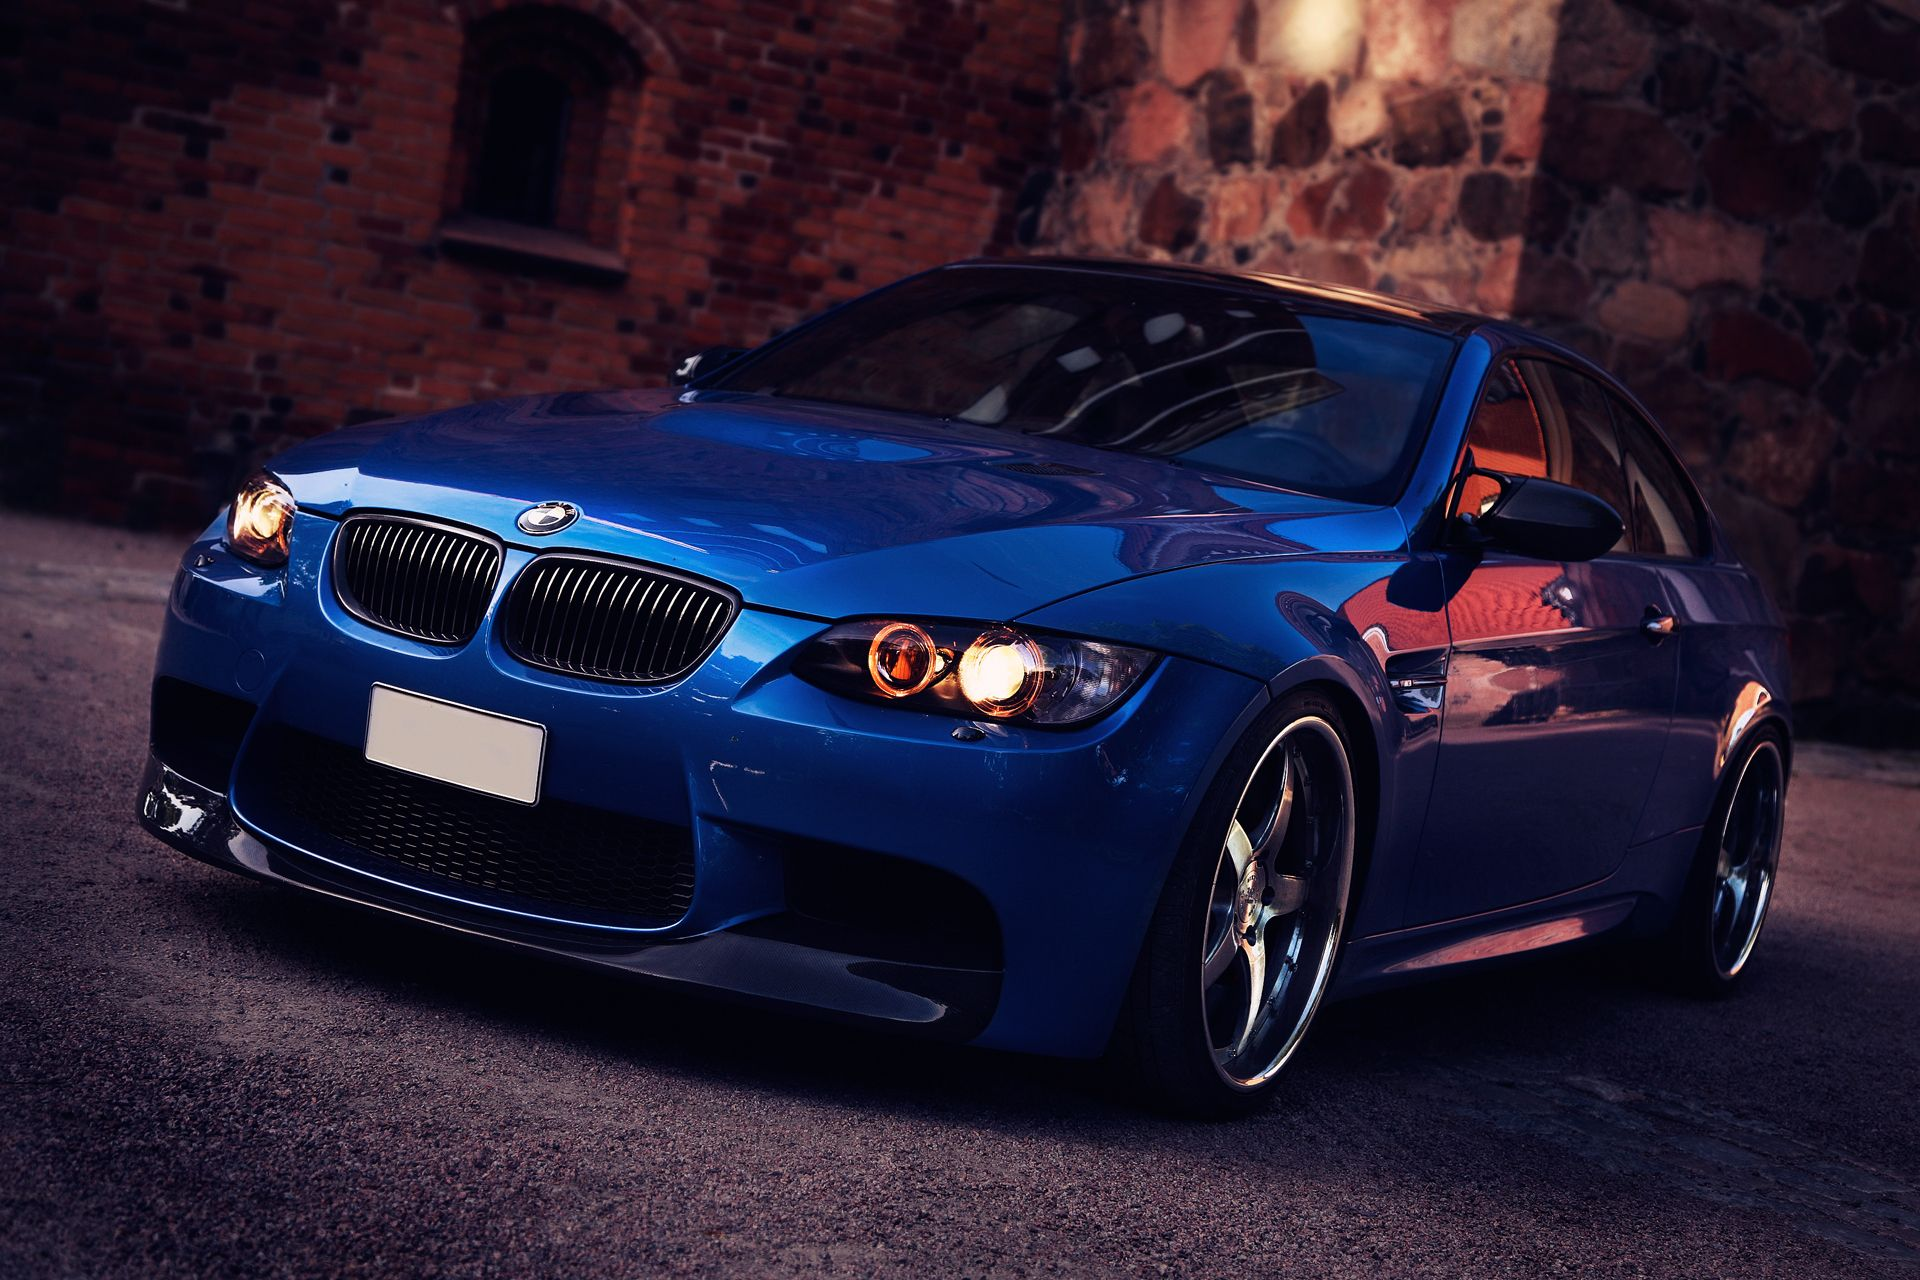 Bmw M3 Coupe Tuning Hd Wallpaper Is Ready To Download For Standard